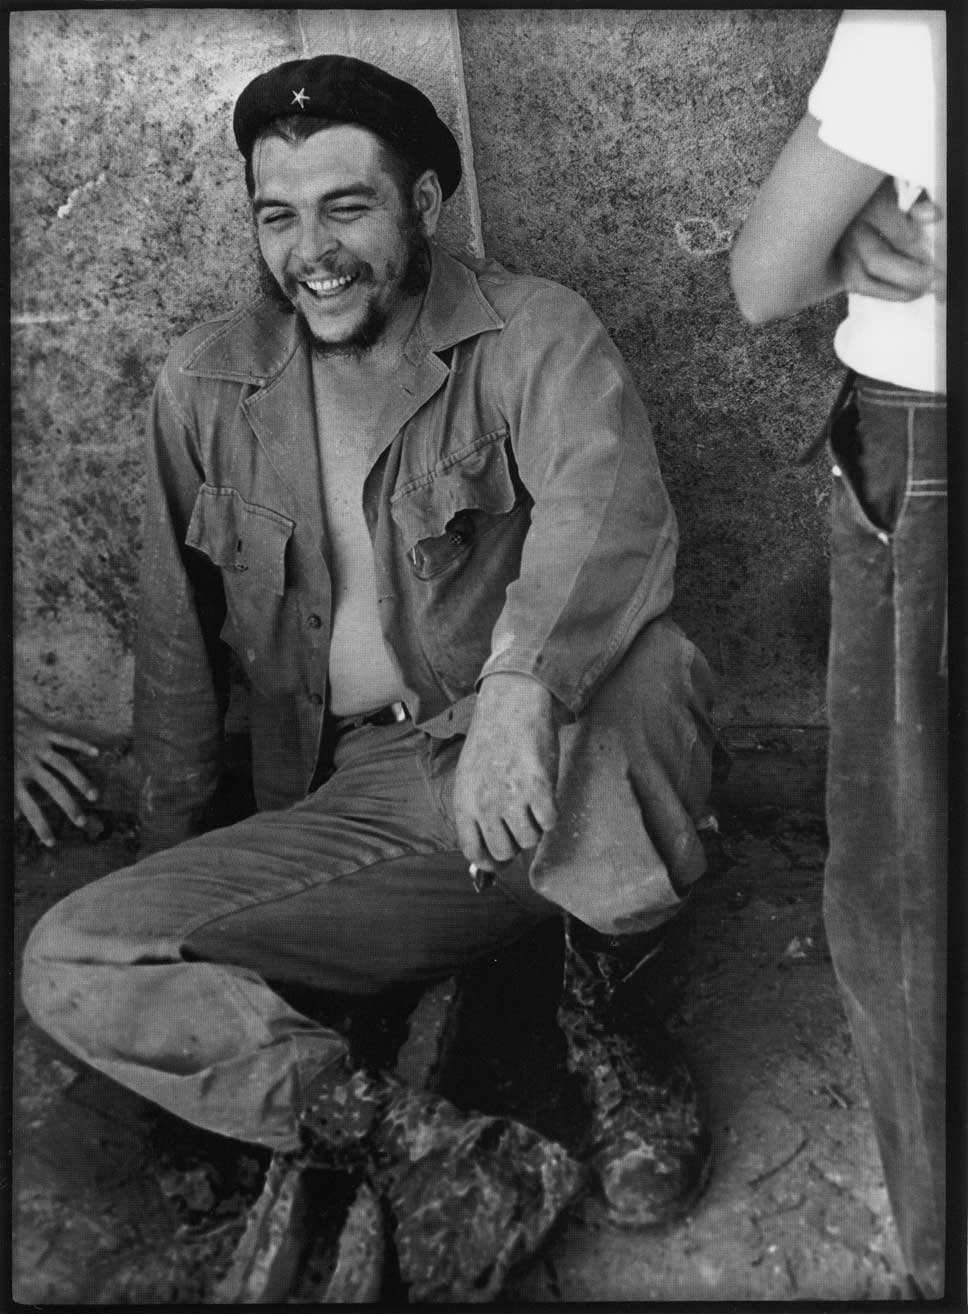 http://www.marxists.org/archive/guevara/1961/misc/x002.jpg